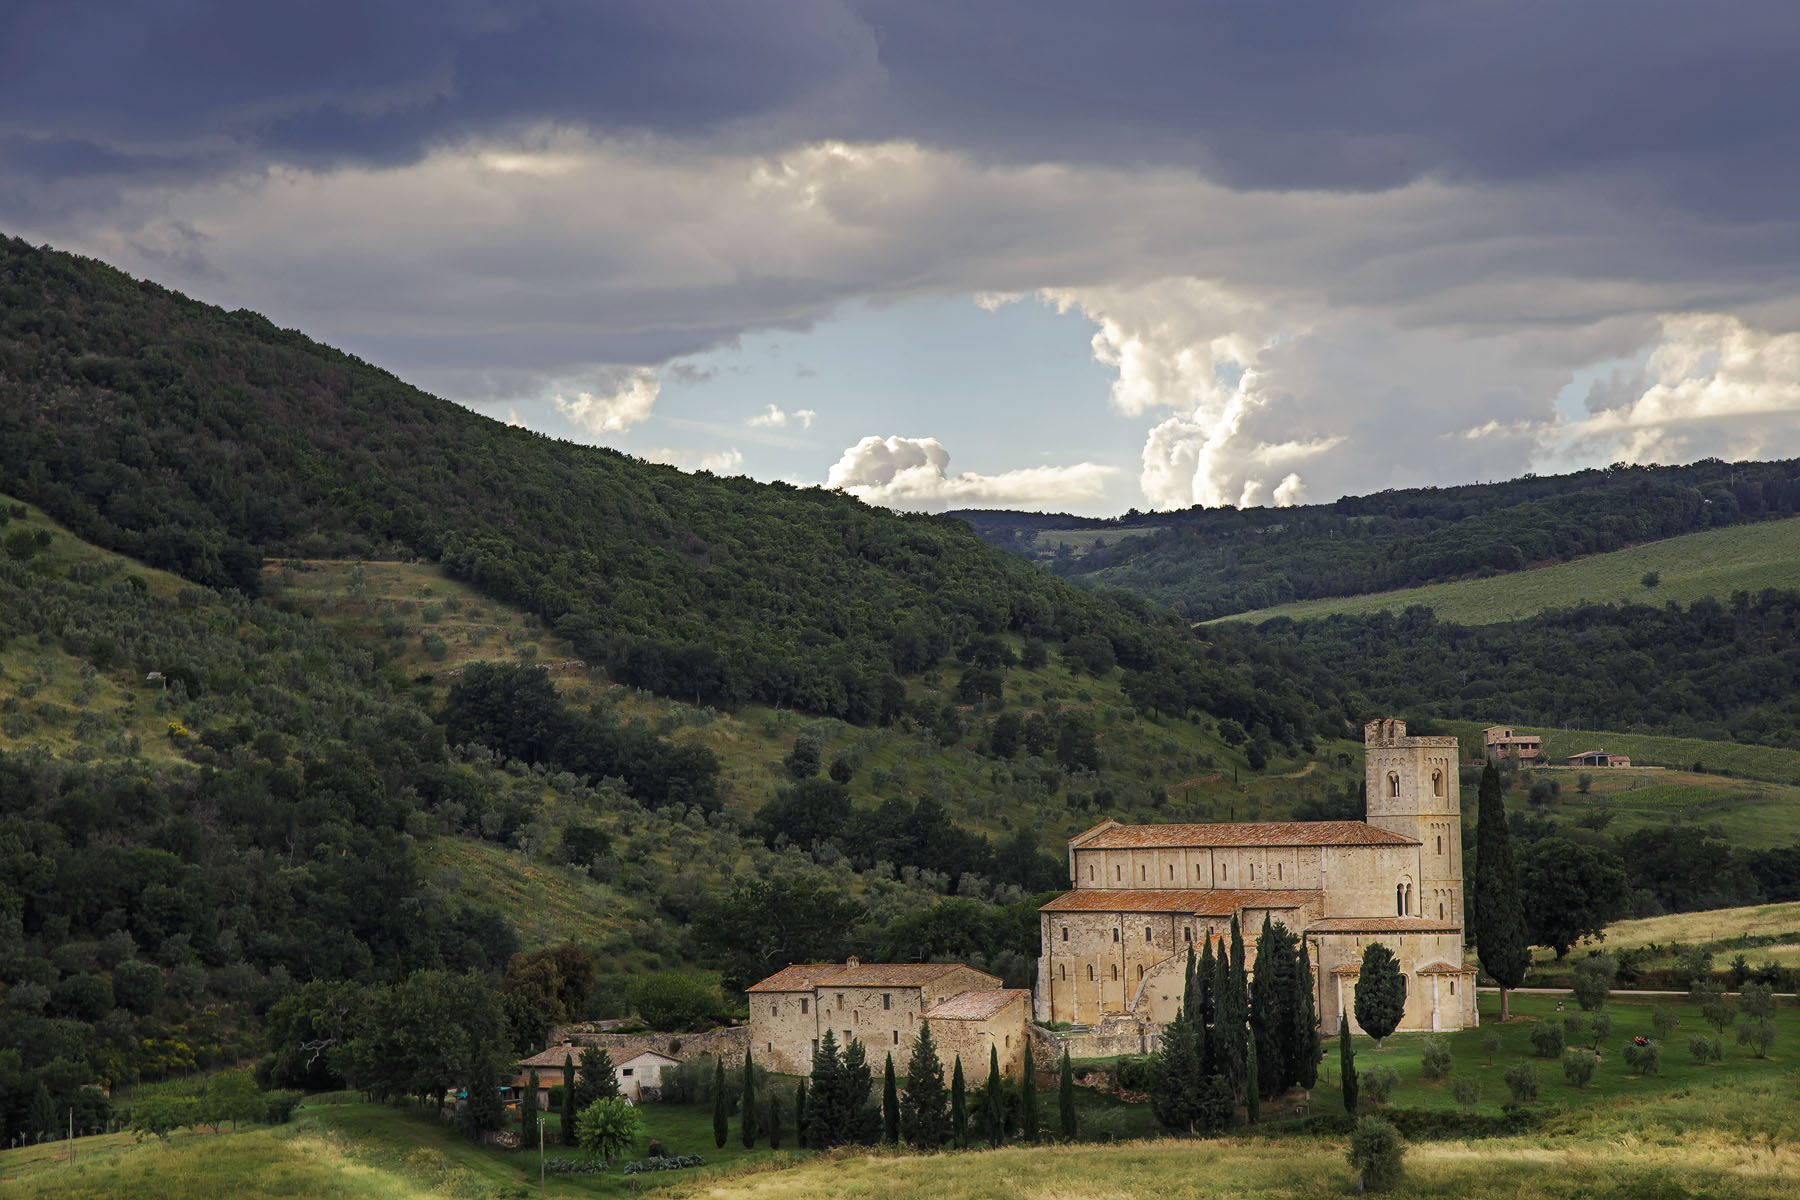 Photograph The Abbey of Sant'Antimo by nick mangiardi on 500px